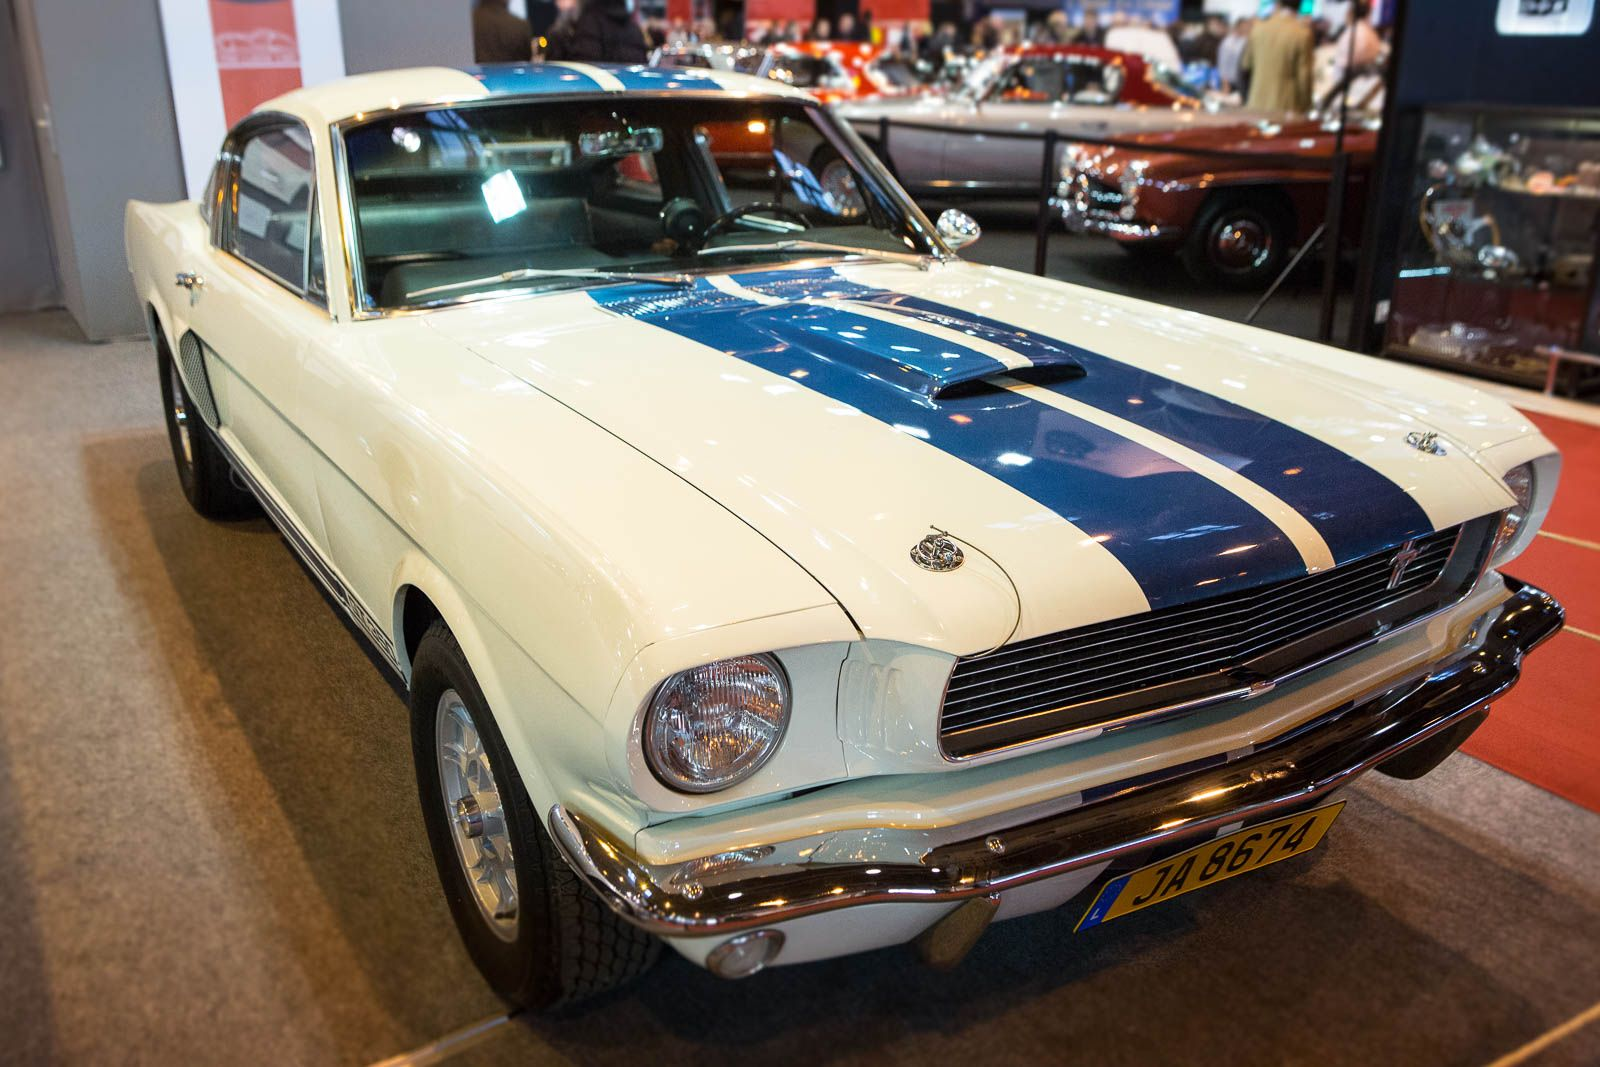 1966 mustang ab werk clarion nz500 wiring diagram ford shelby gt350 salon rétromobile 2015